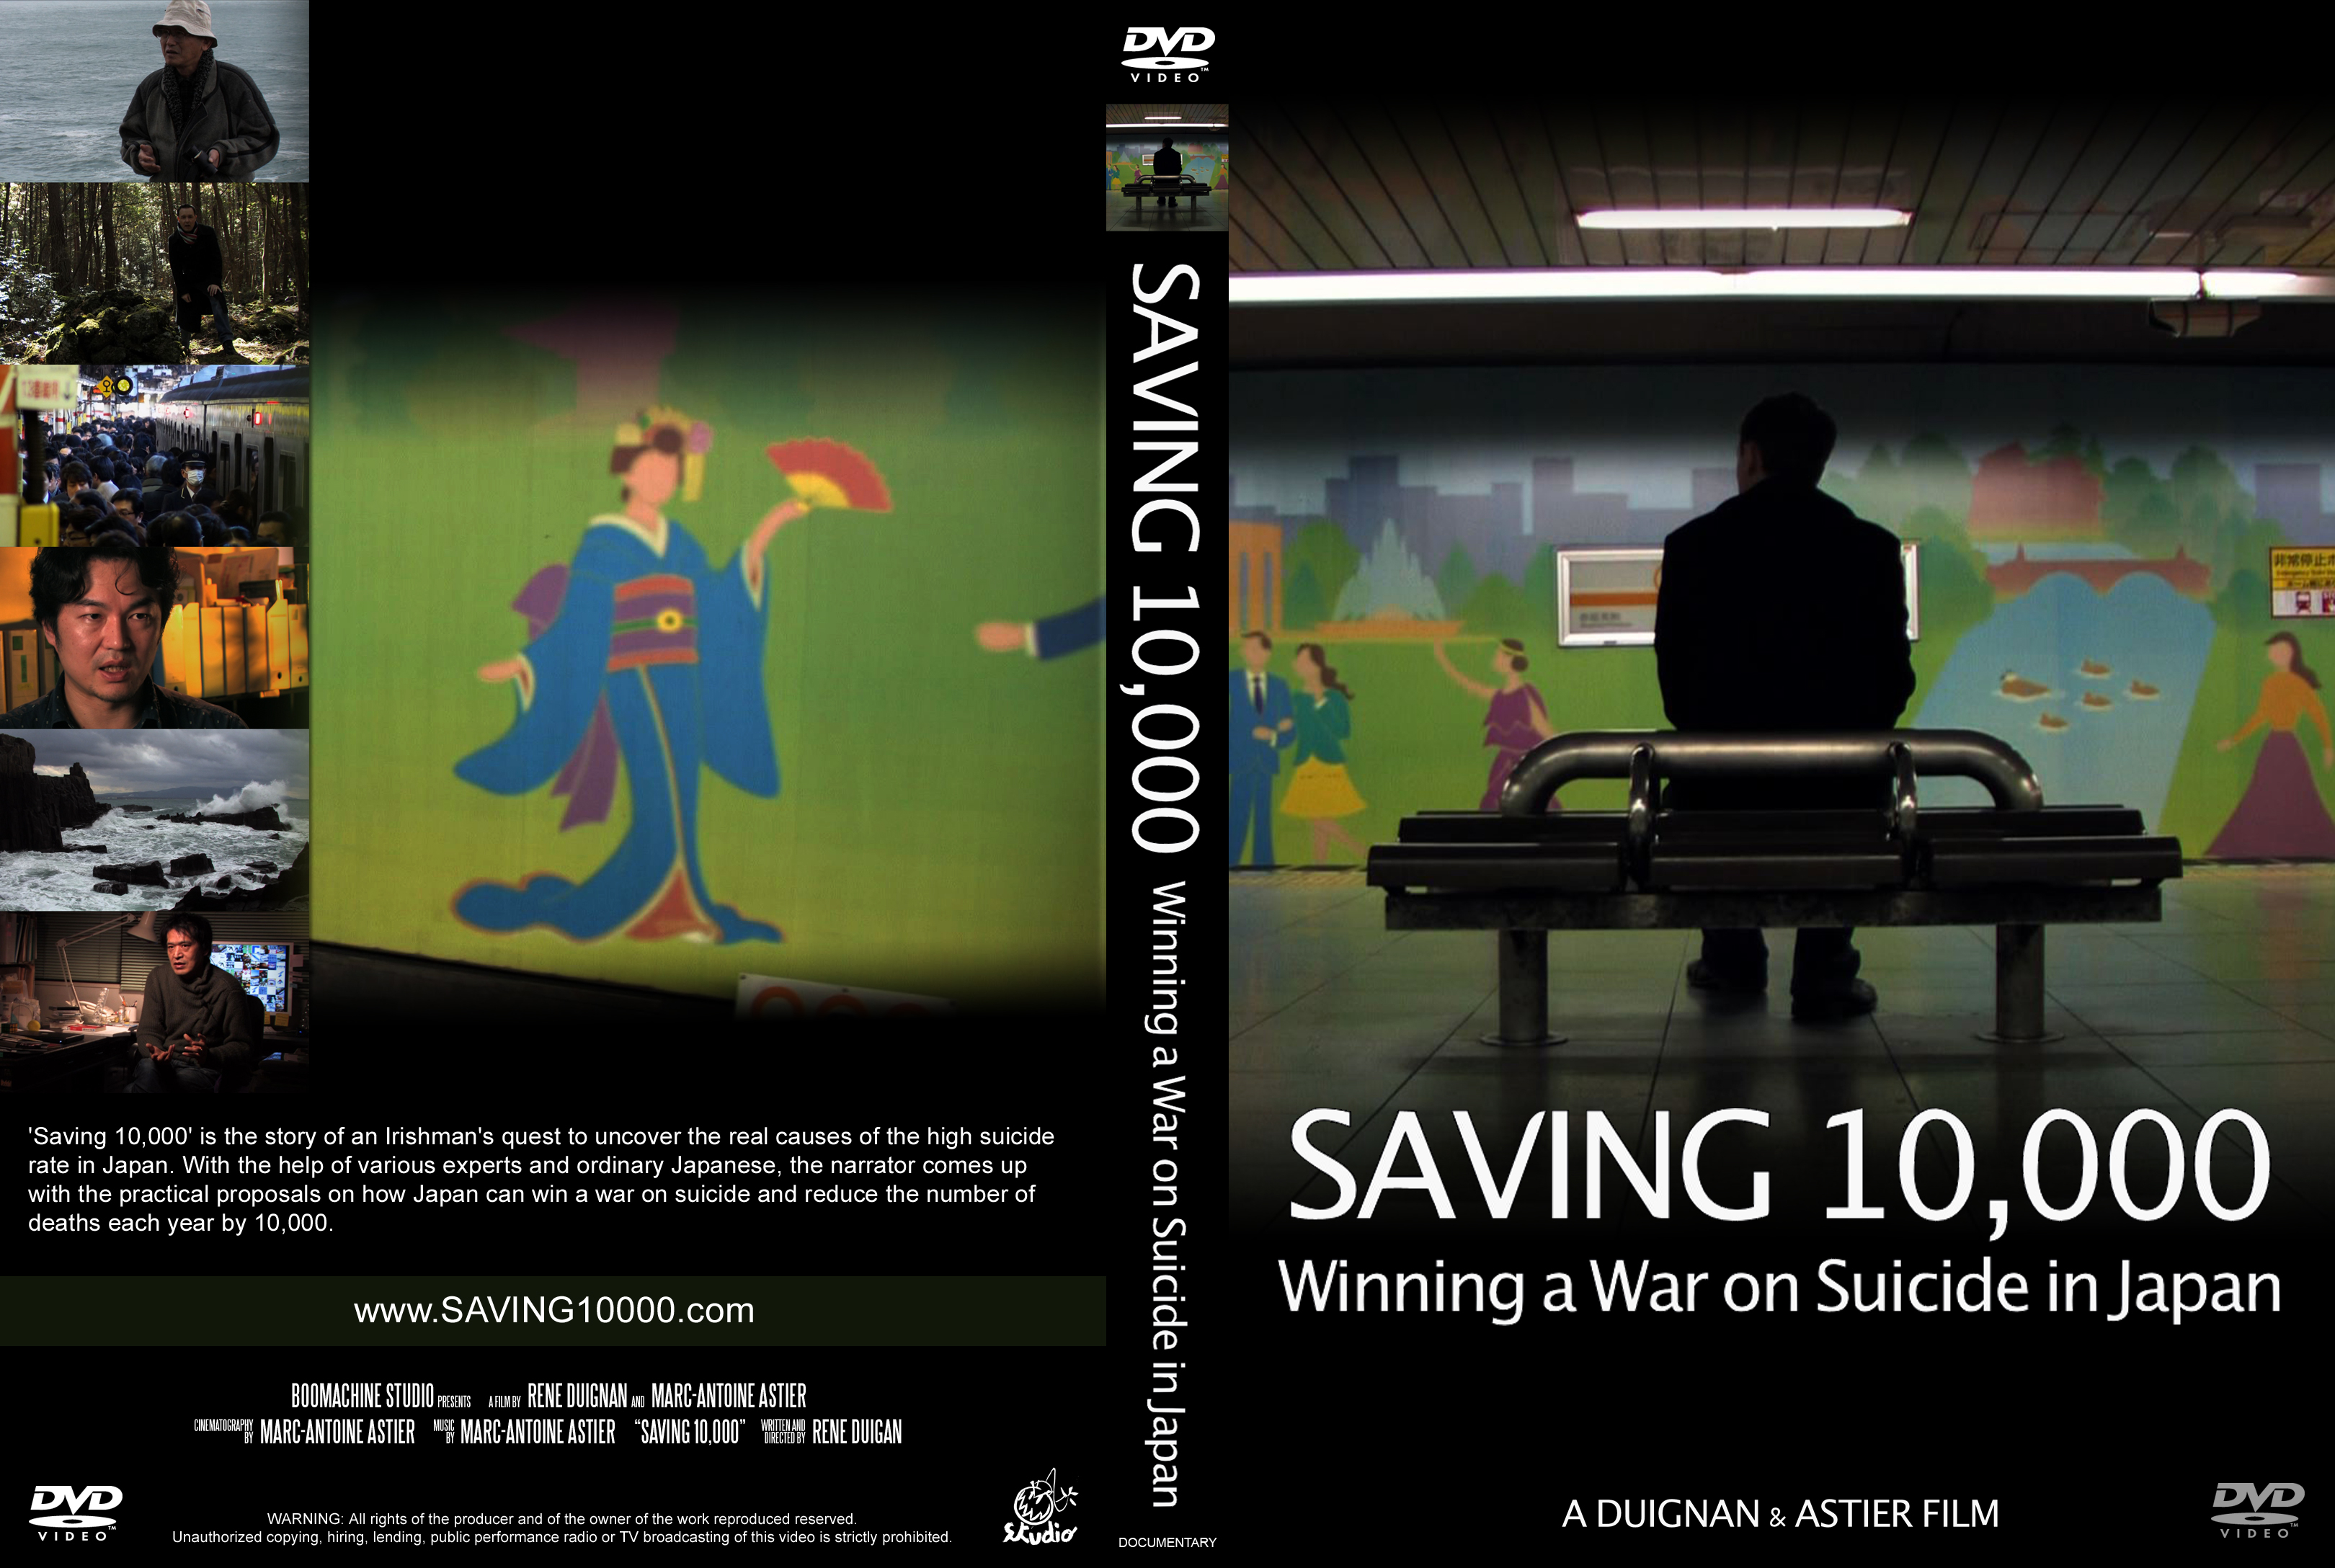 """Saving 10,000:Winning A War On Suicide"" Screened at the National Diet, Publicly Released"